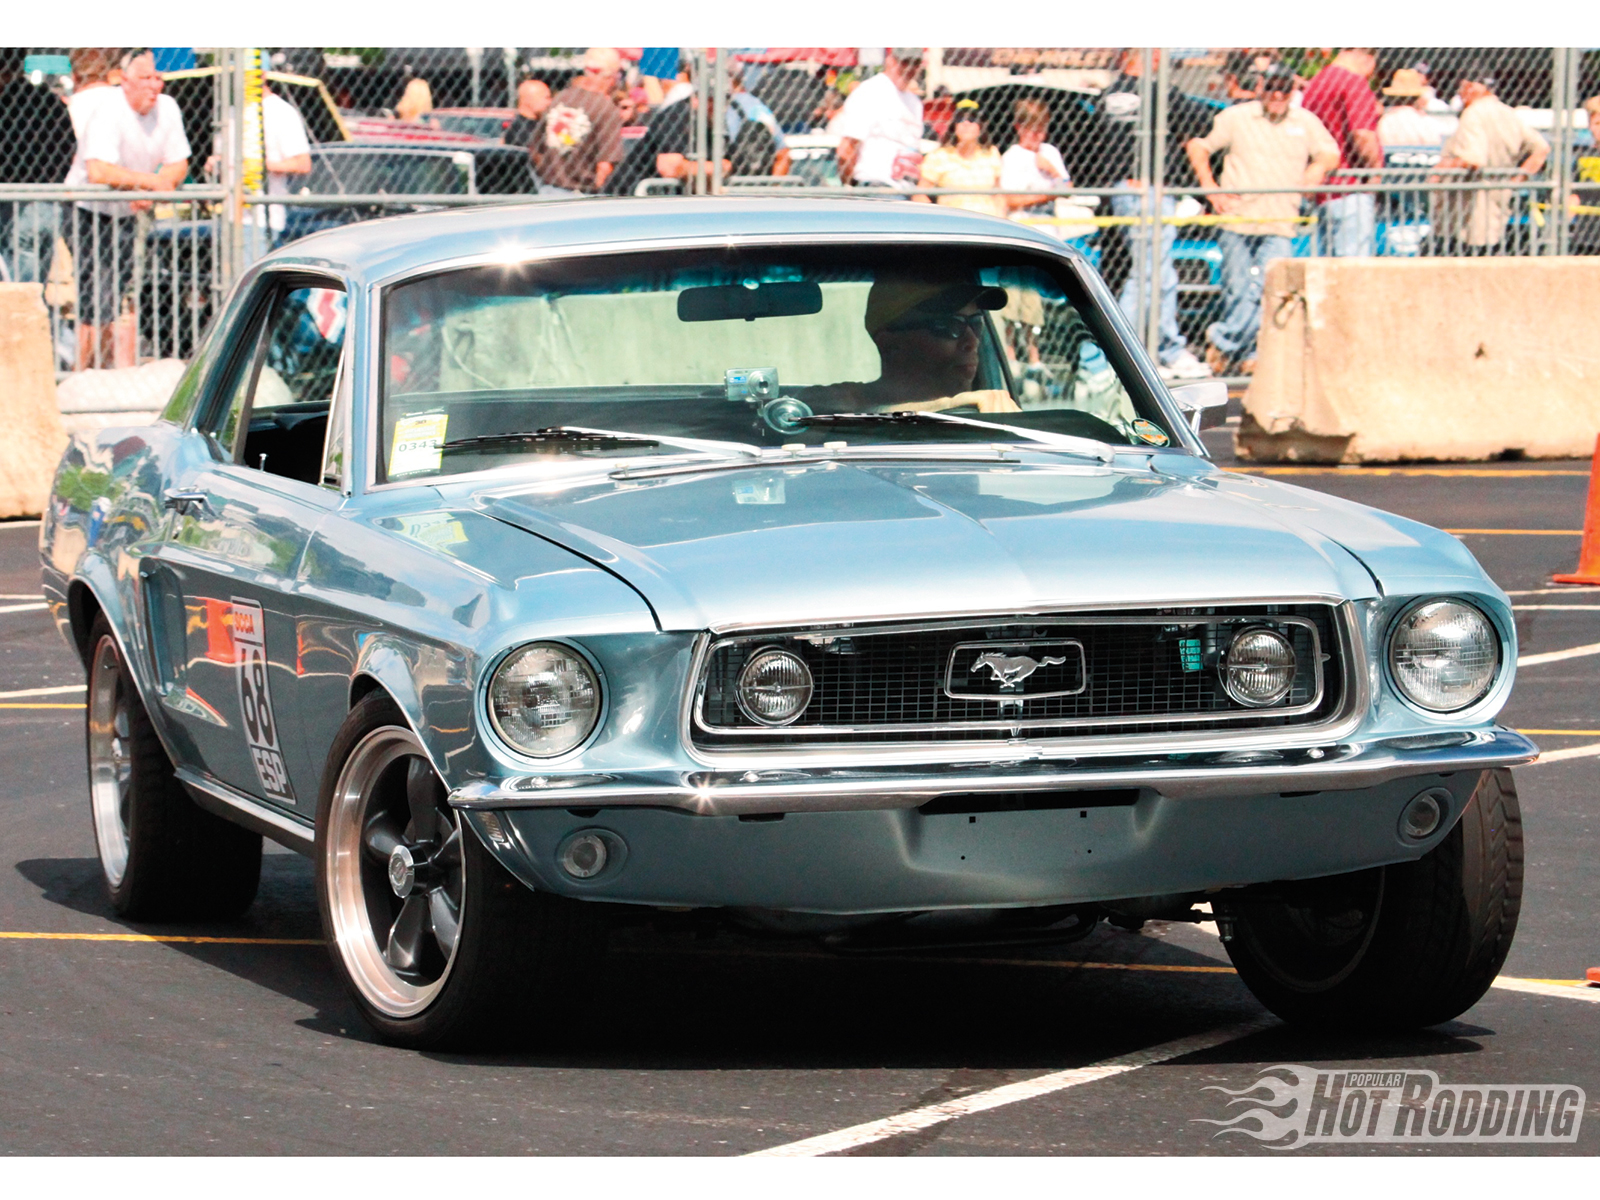 Our faith in Fords was further bolstered in Nashville by Mark Strong's 1968 Mustang coupe, looking eerily like Christopher Campbell's similar machine. Strong calls on suspension parts from Global West to get him turned, while go-power comes from a stock 302, and braking via SSBC discs.